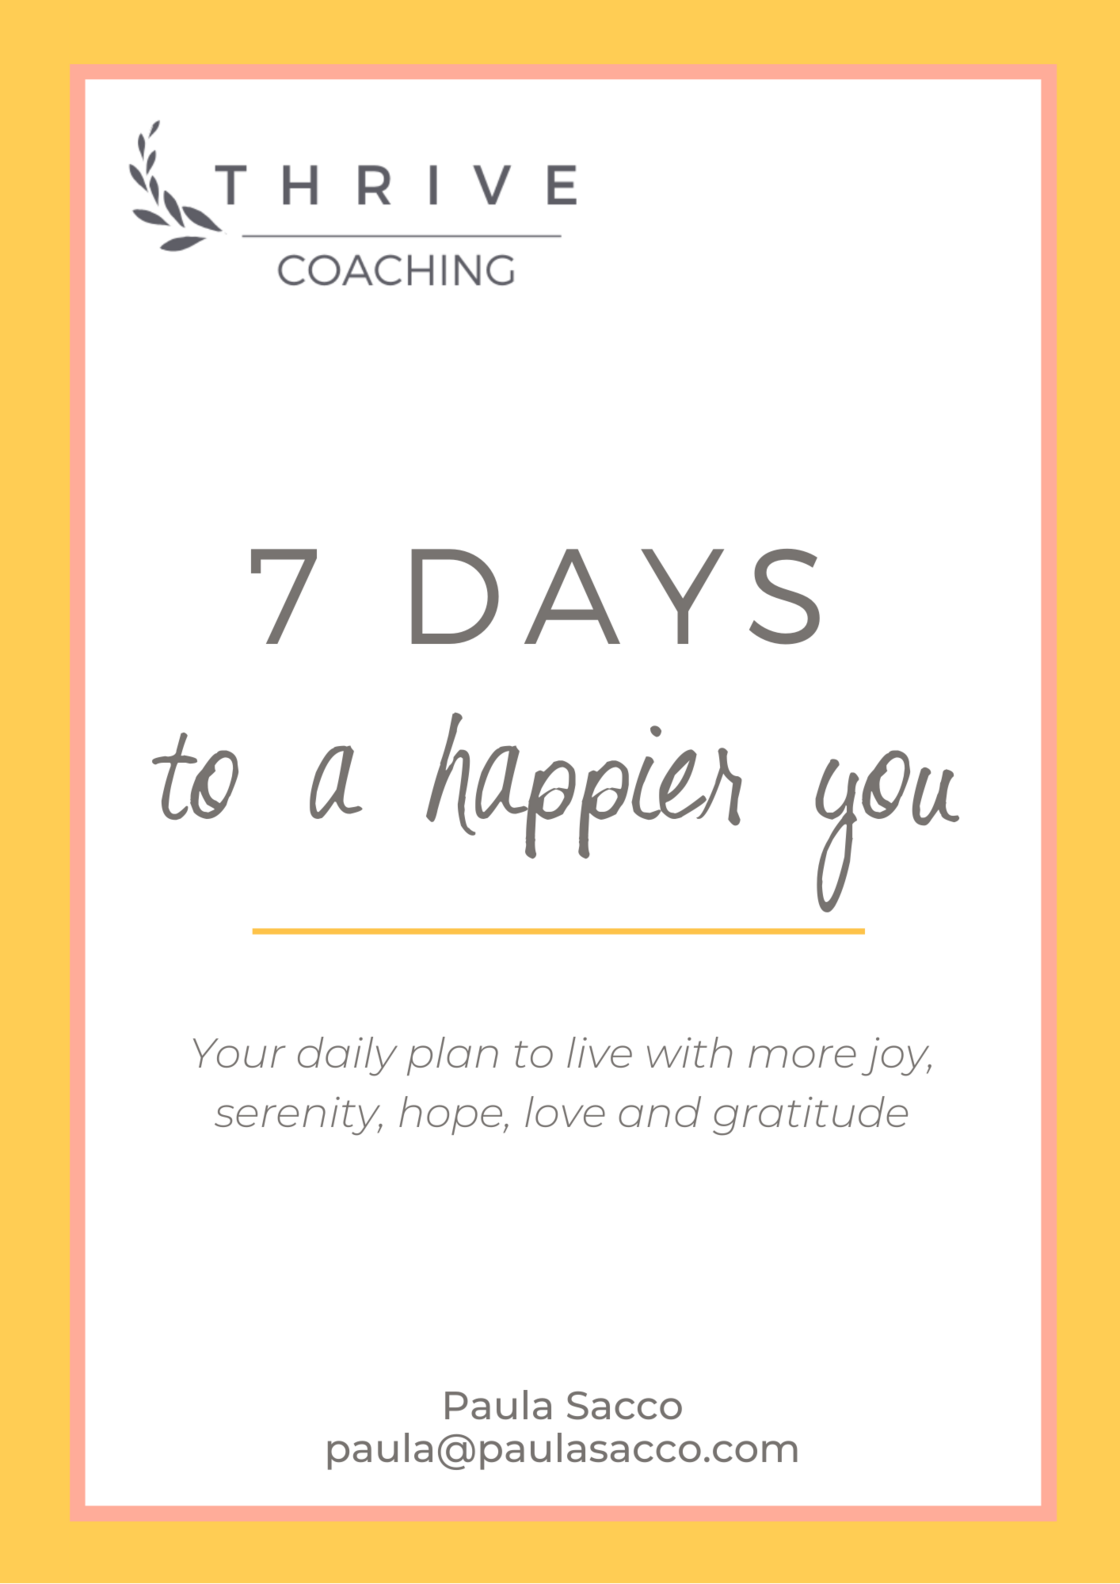 7 Days to a Happier You (1).png